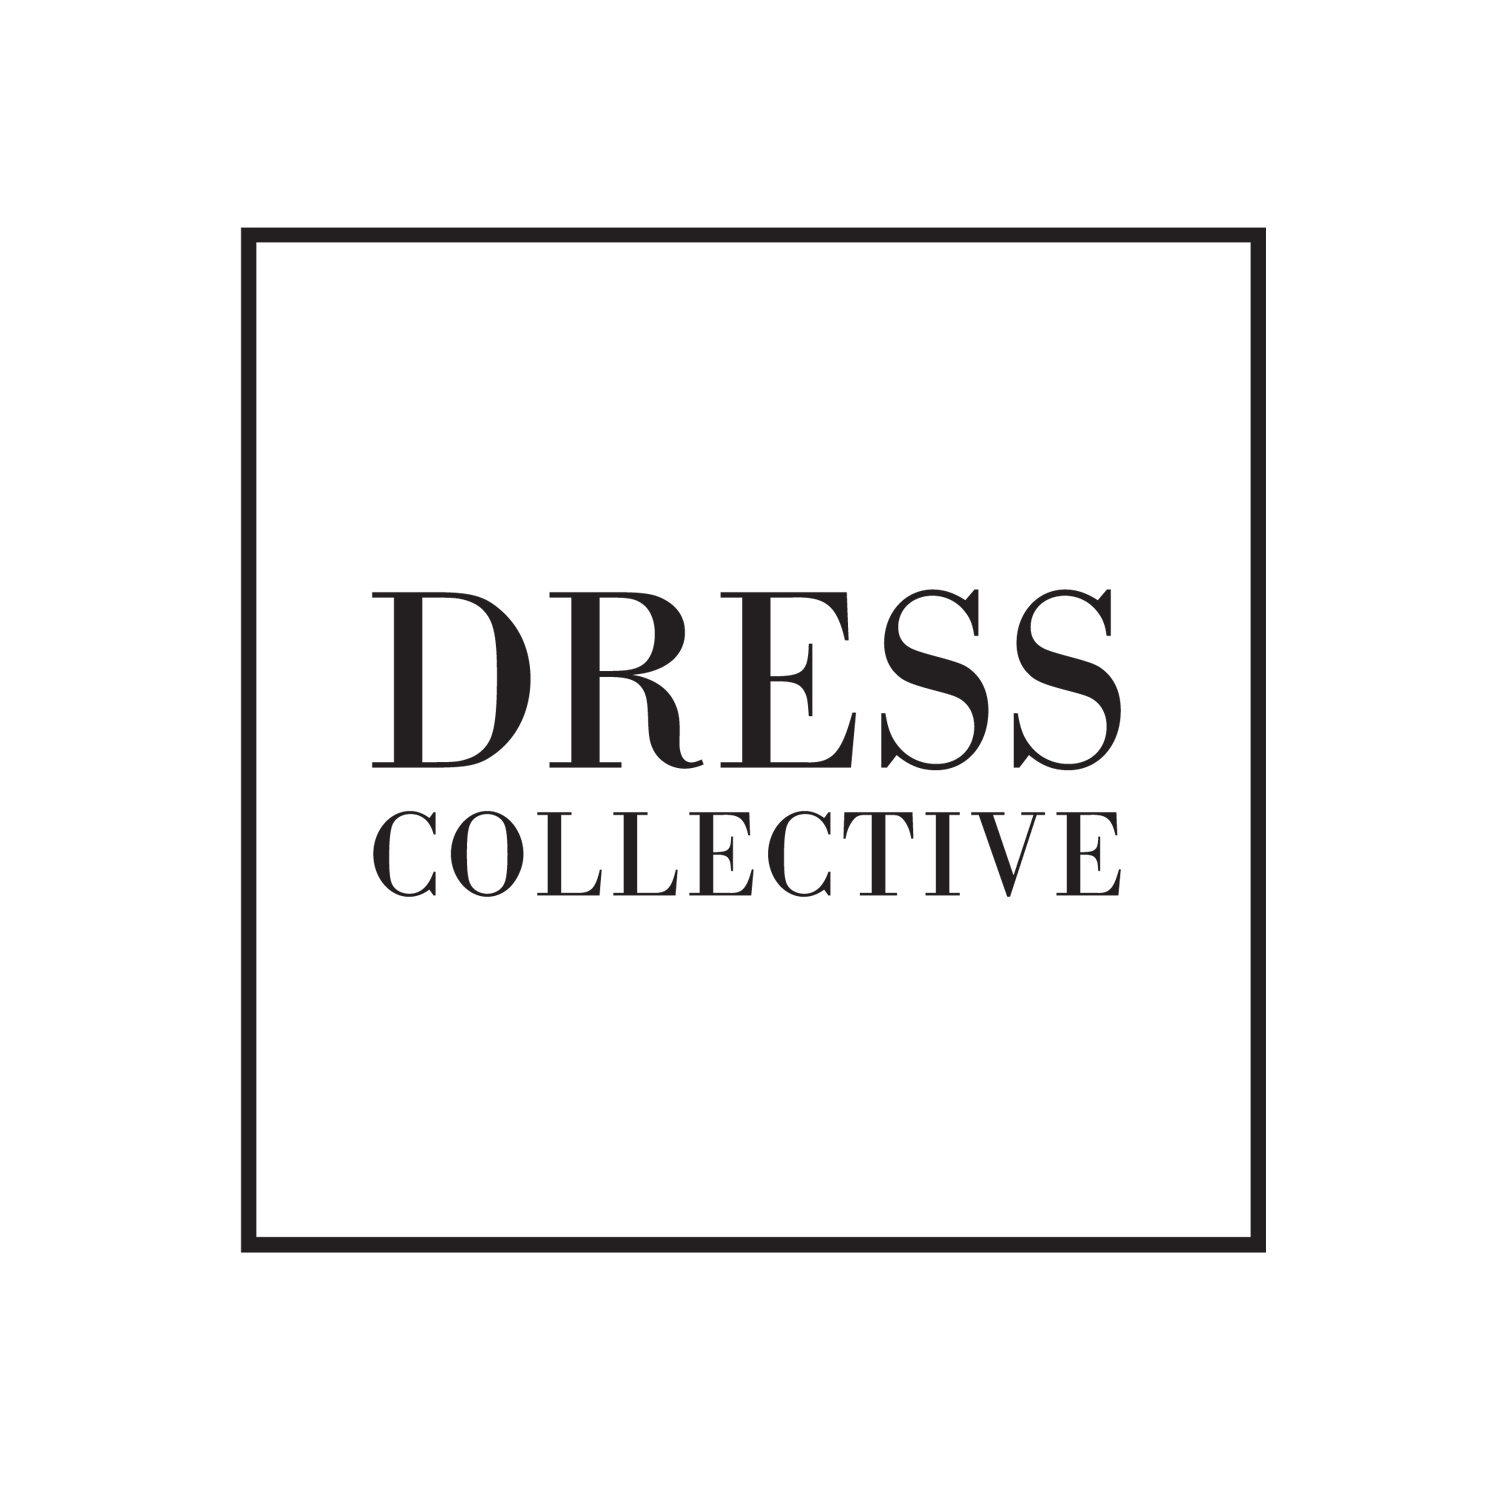 LOGO DESIGN FOR DRESS COLLECTIVE